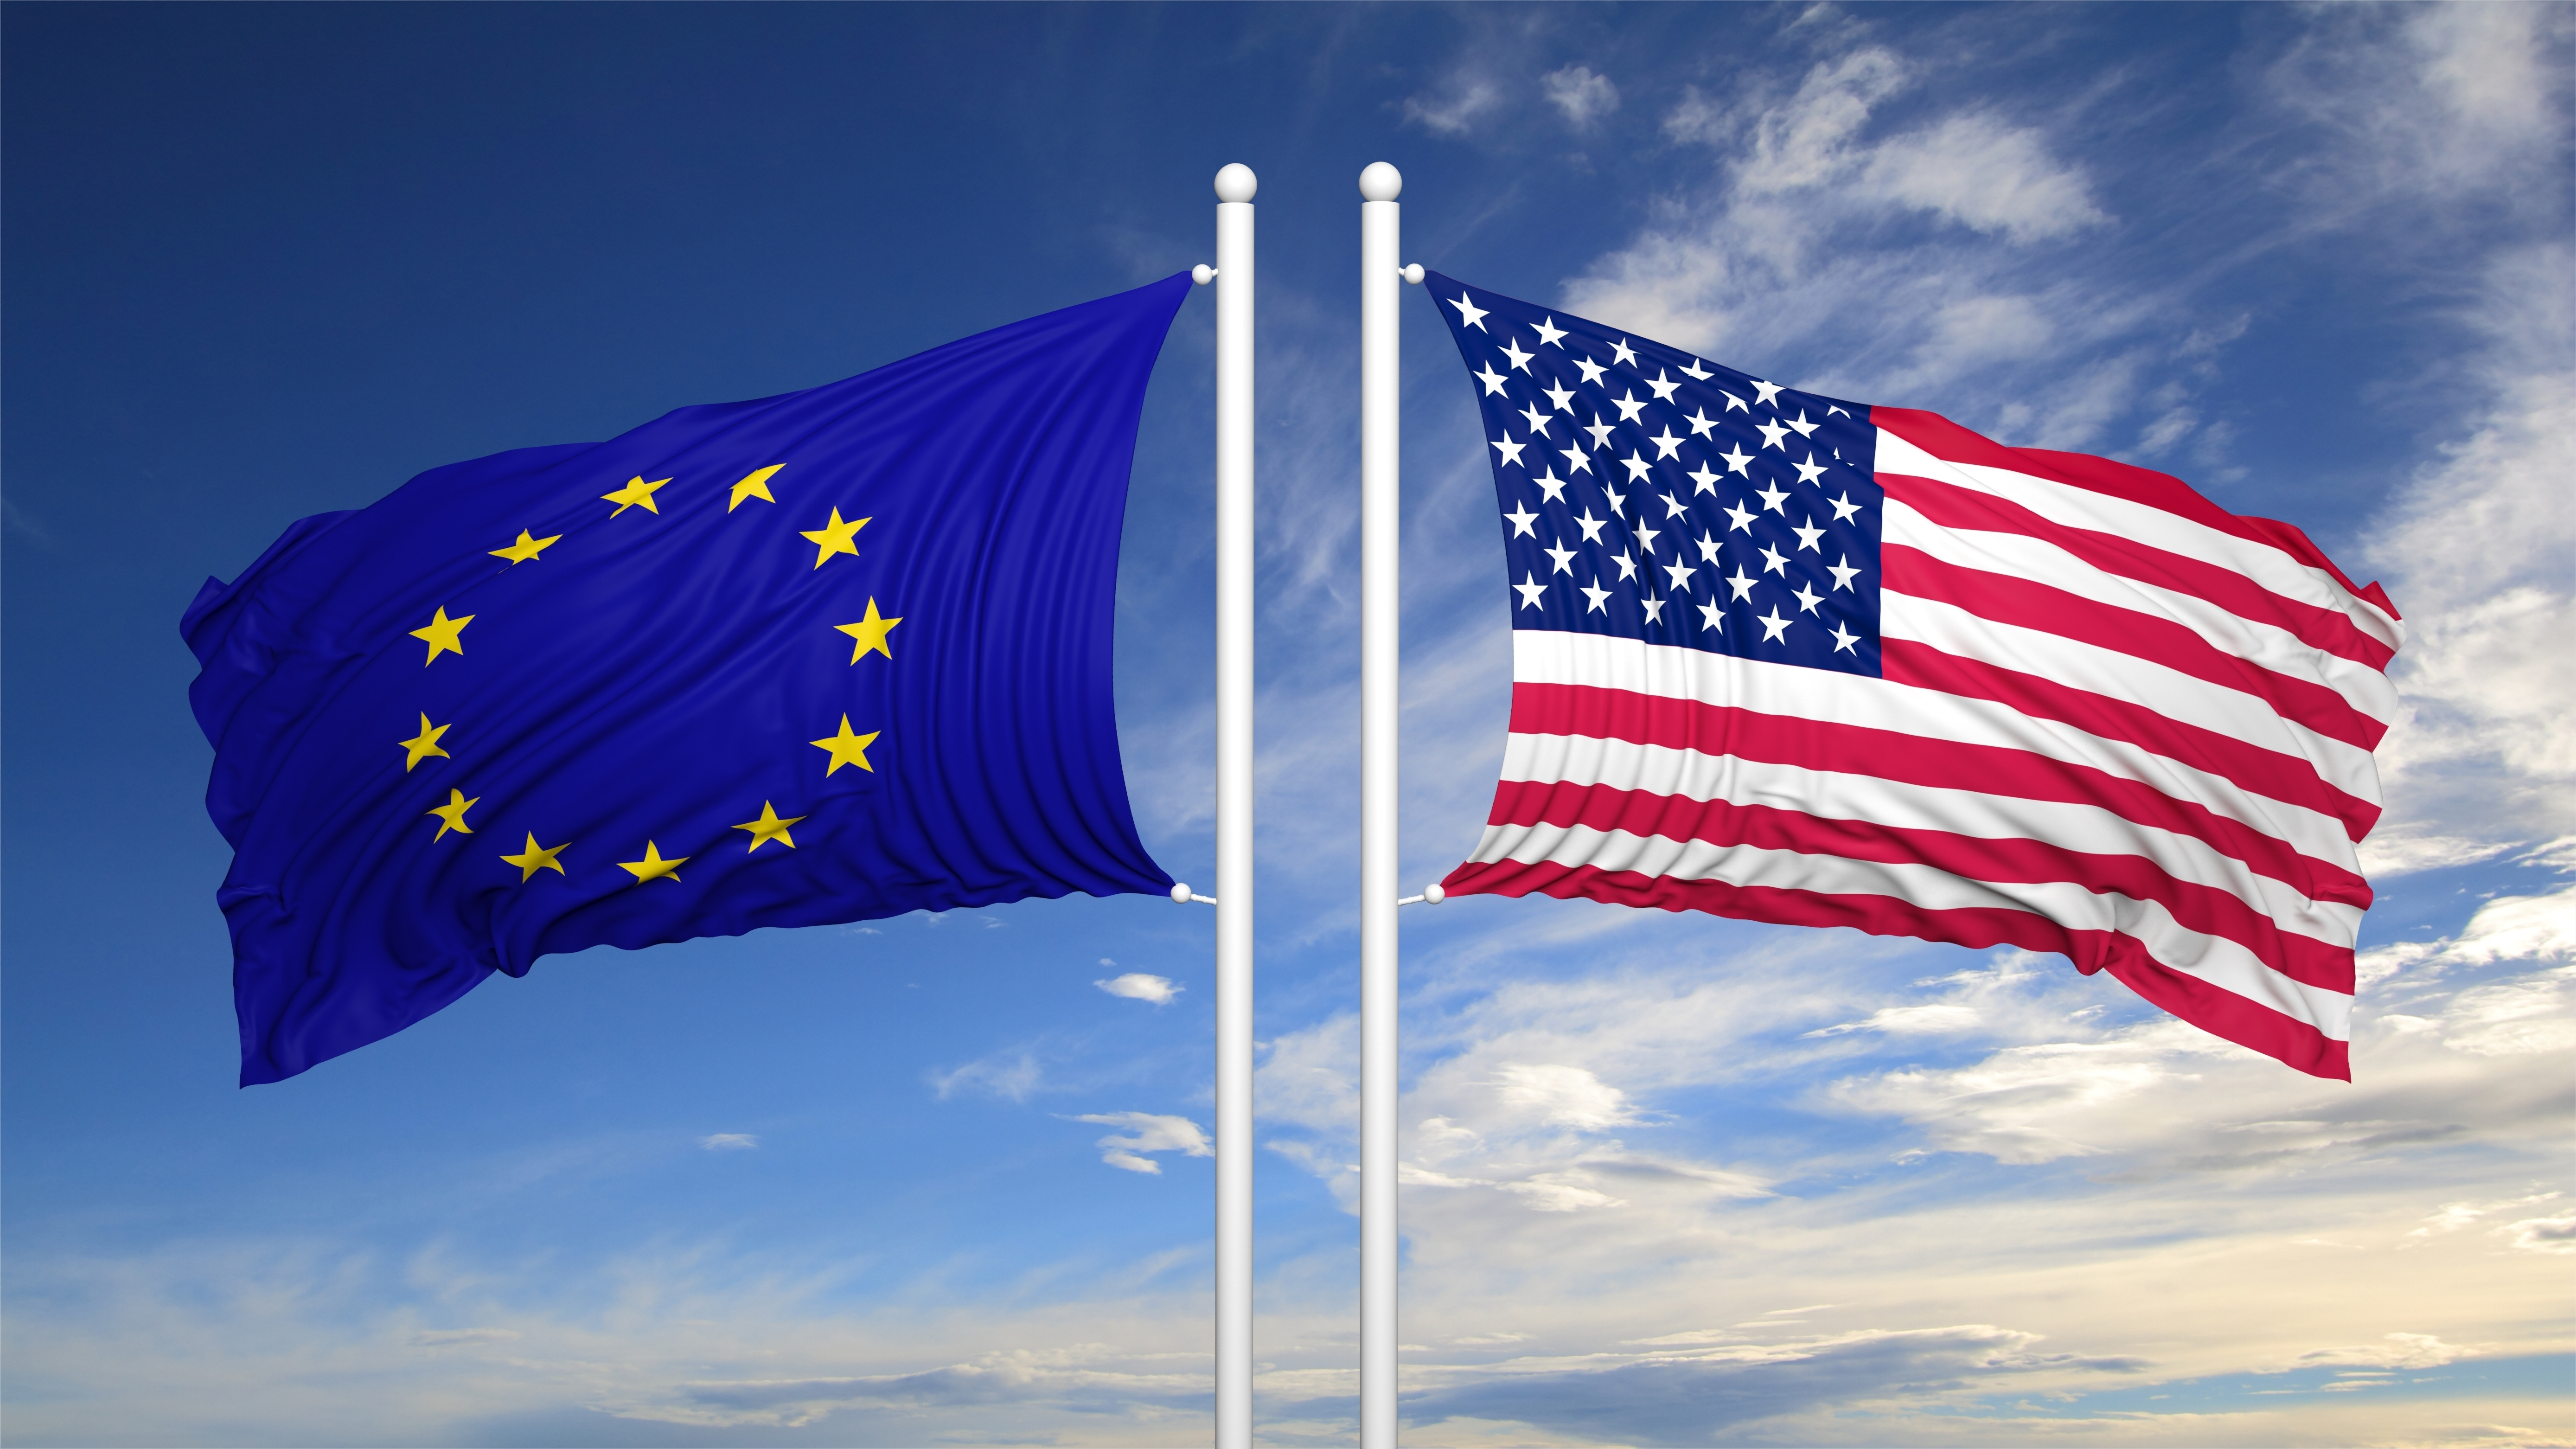 American and European flags waving against of sky